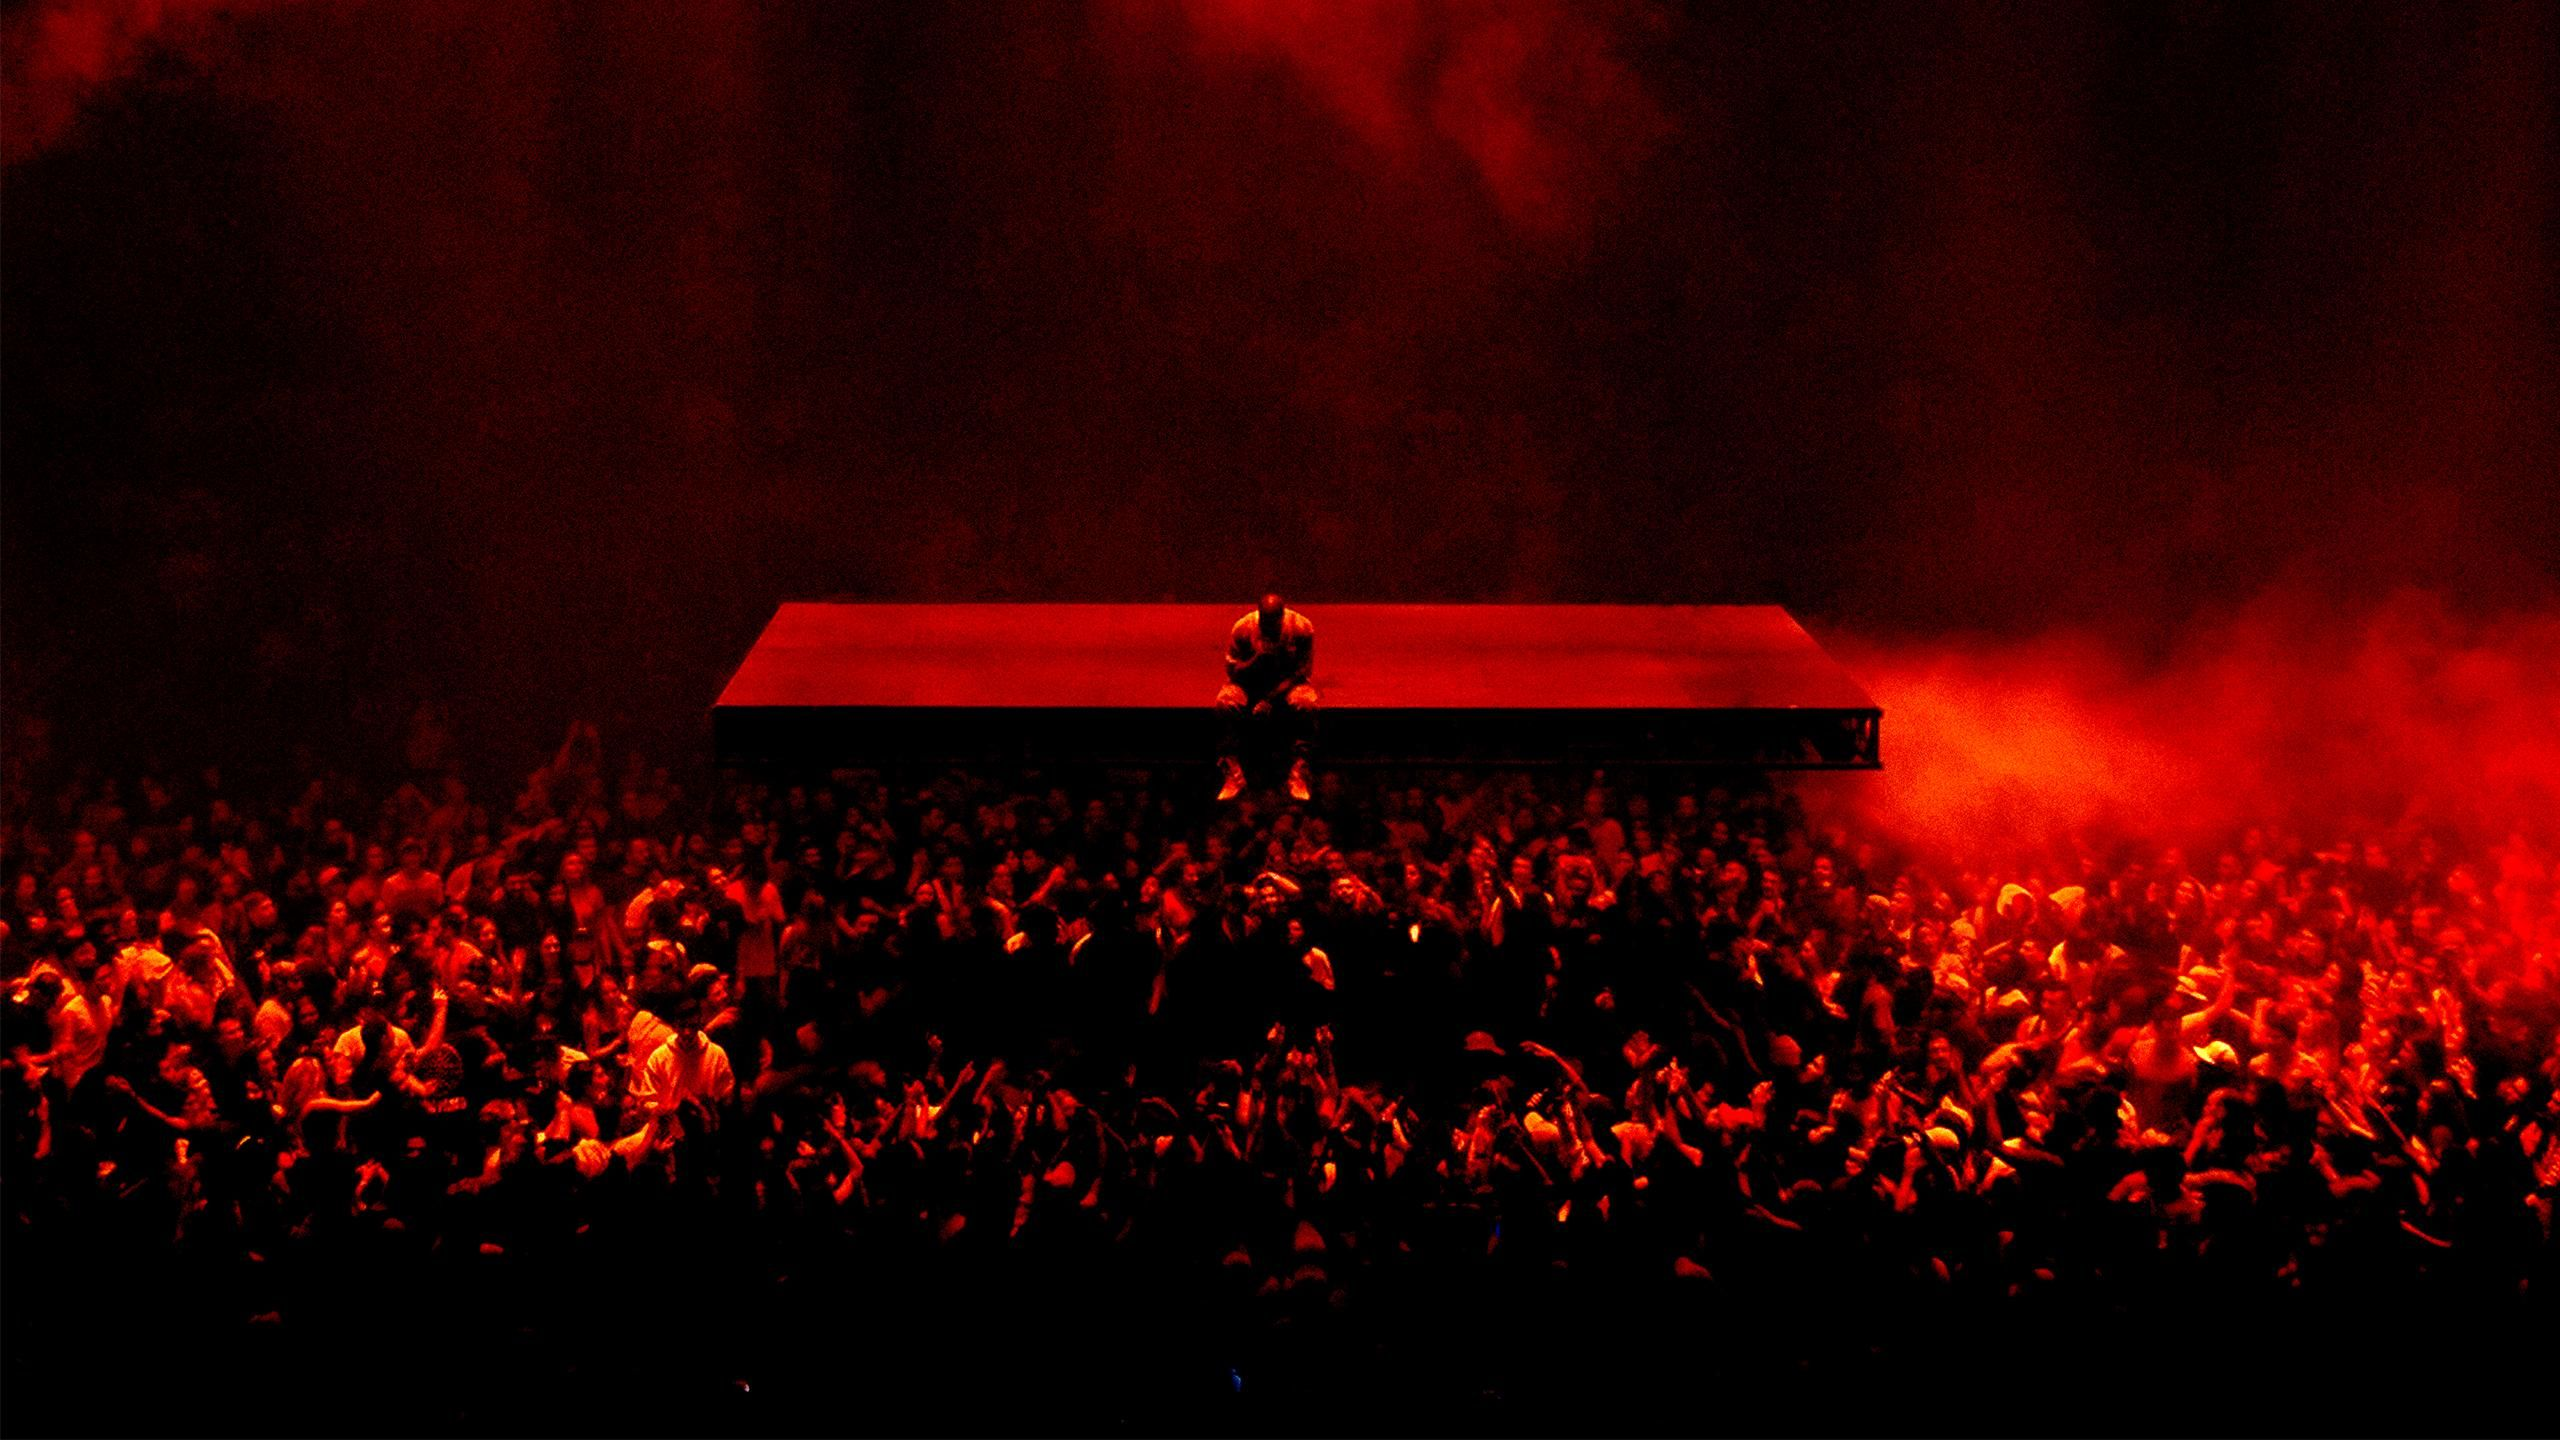 Kanye West Yeezus Wallpaper For Android Desktop